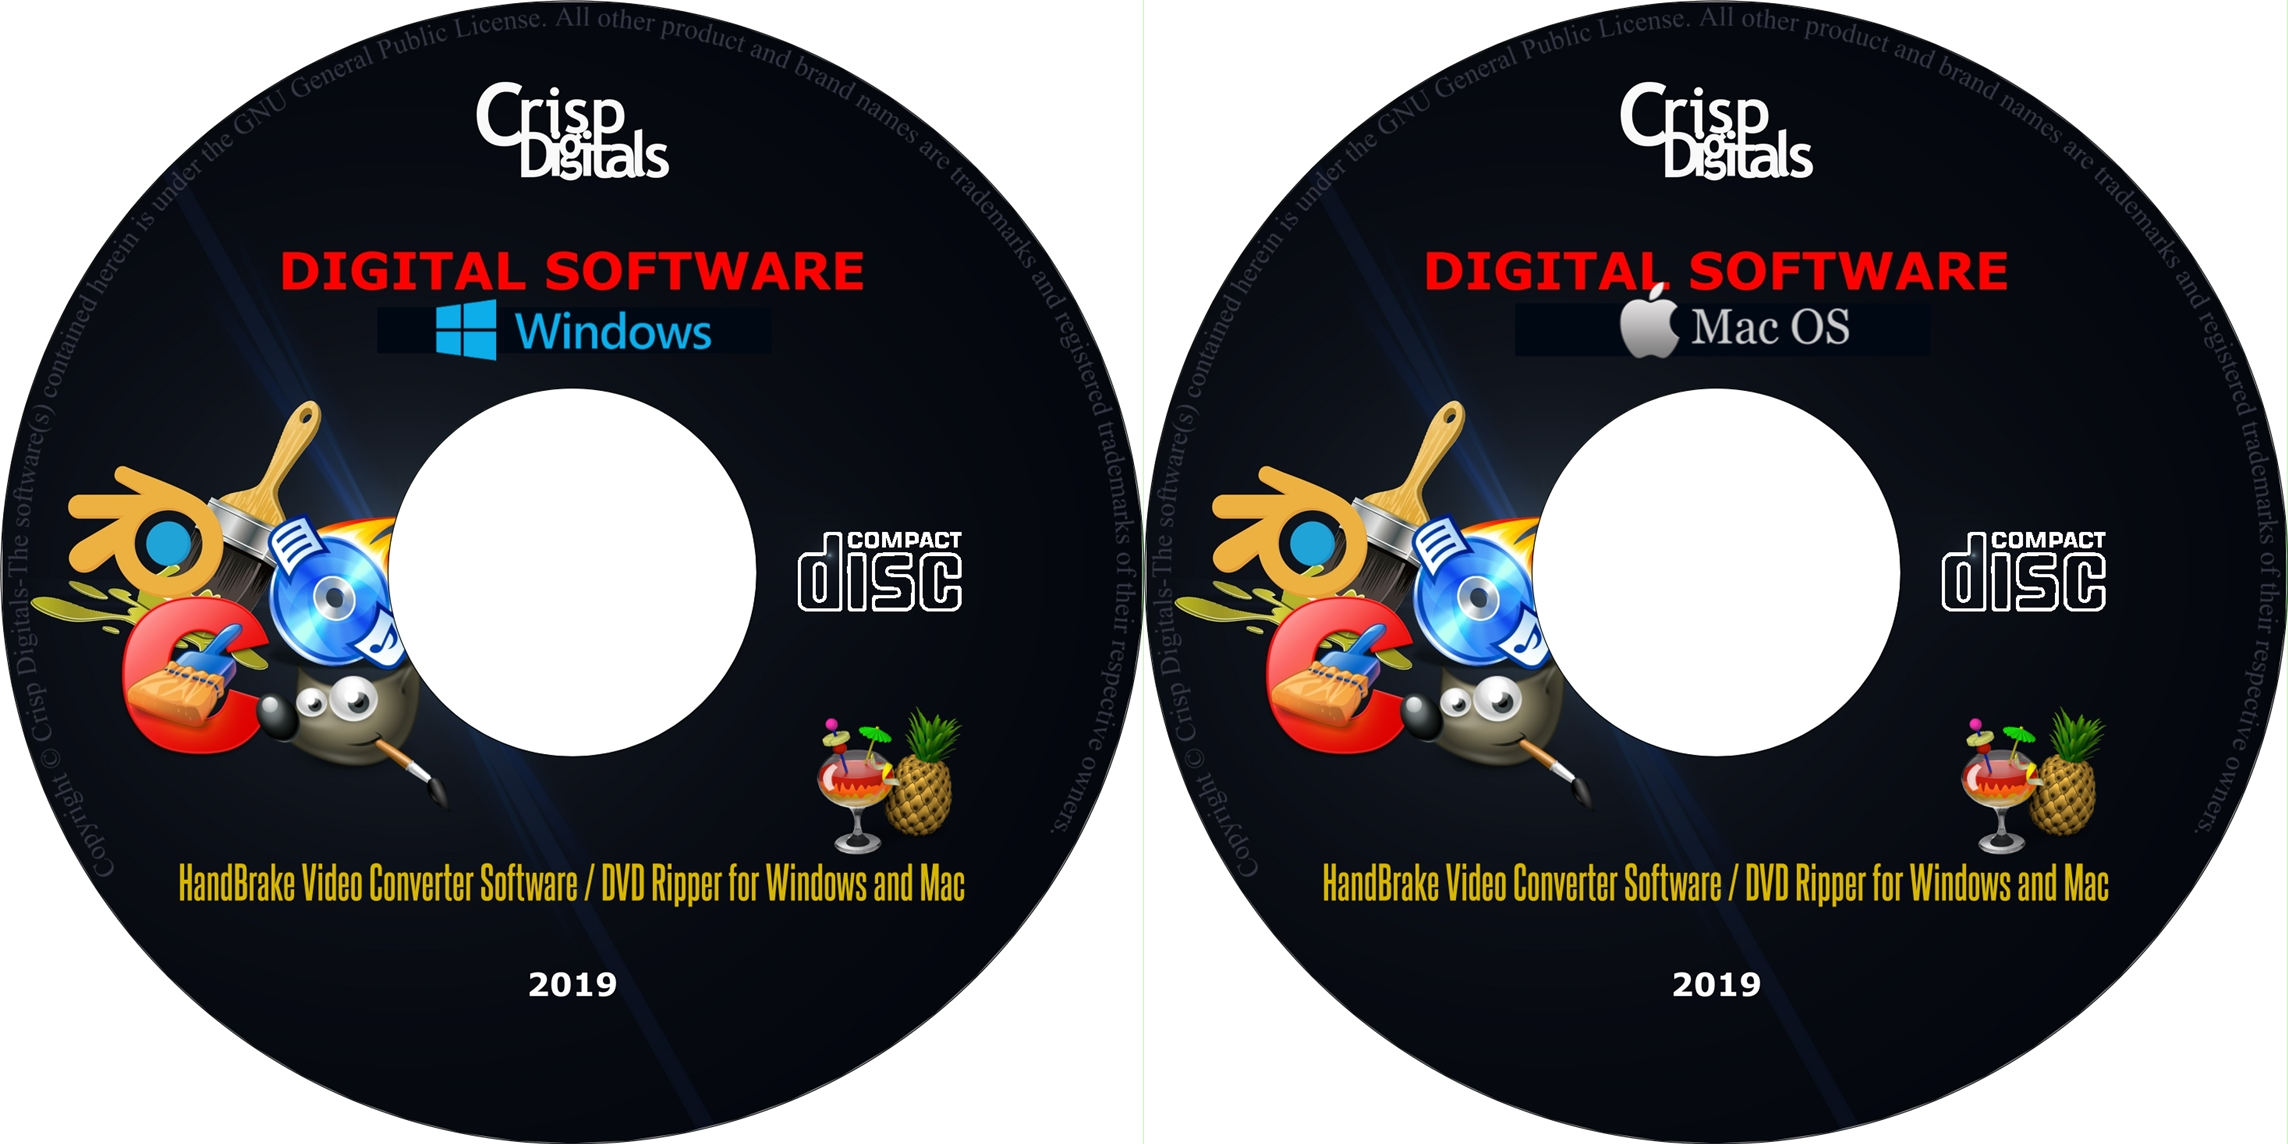 Details about ****NEW HandBrake 2019 Video Conversion/DVD Ripper Software  for Windows****